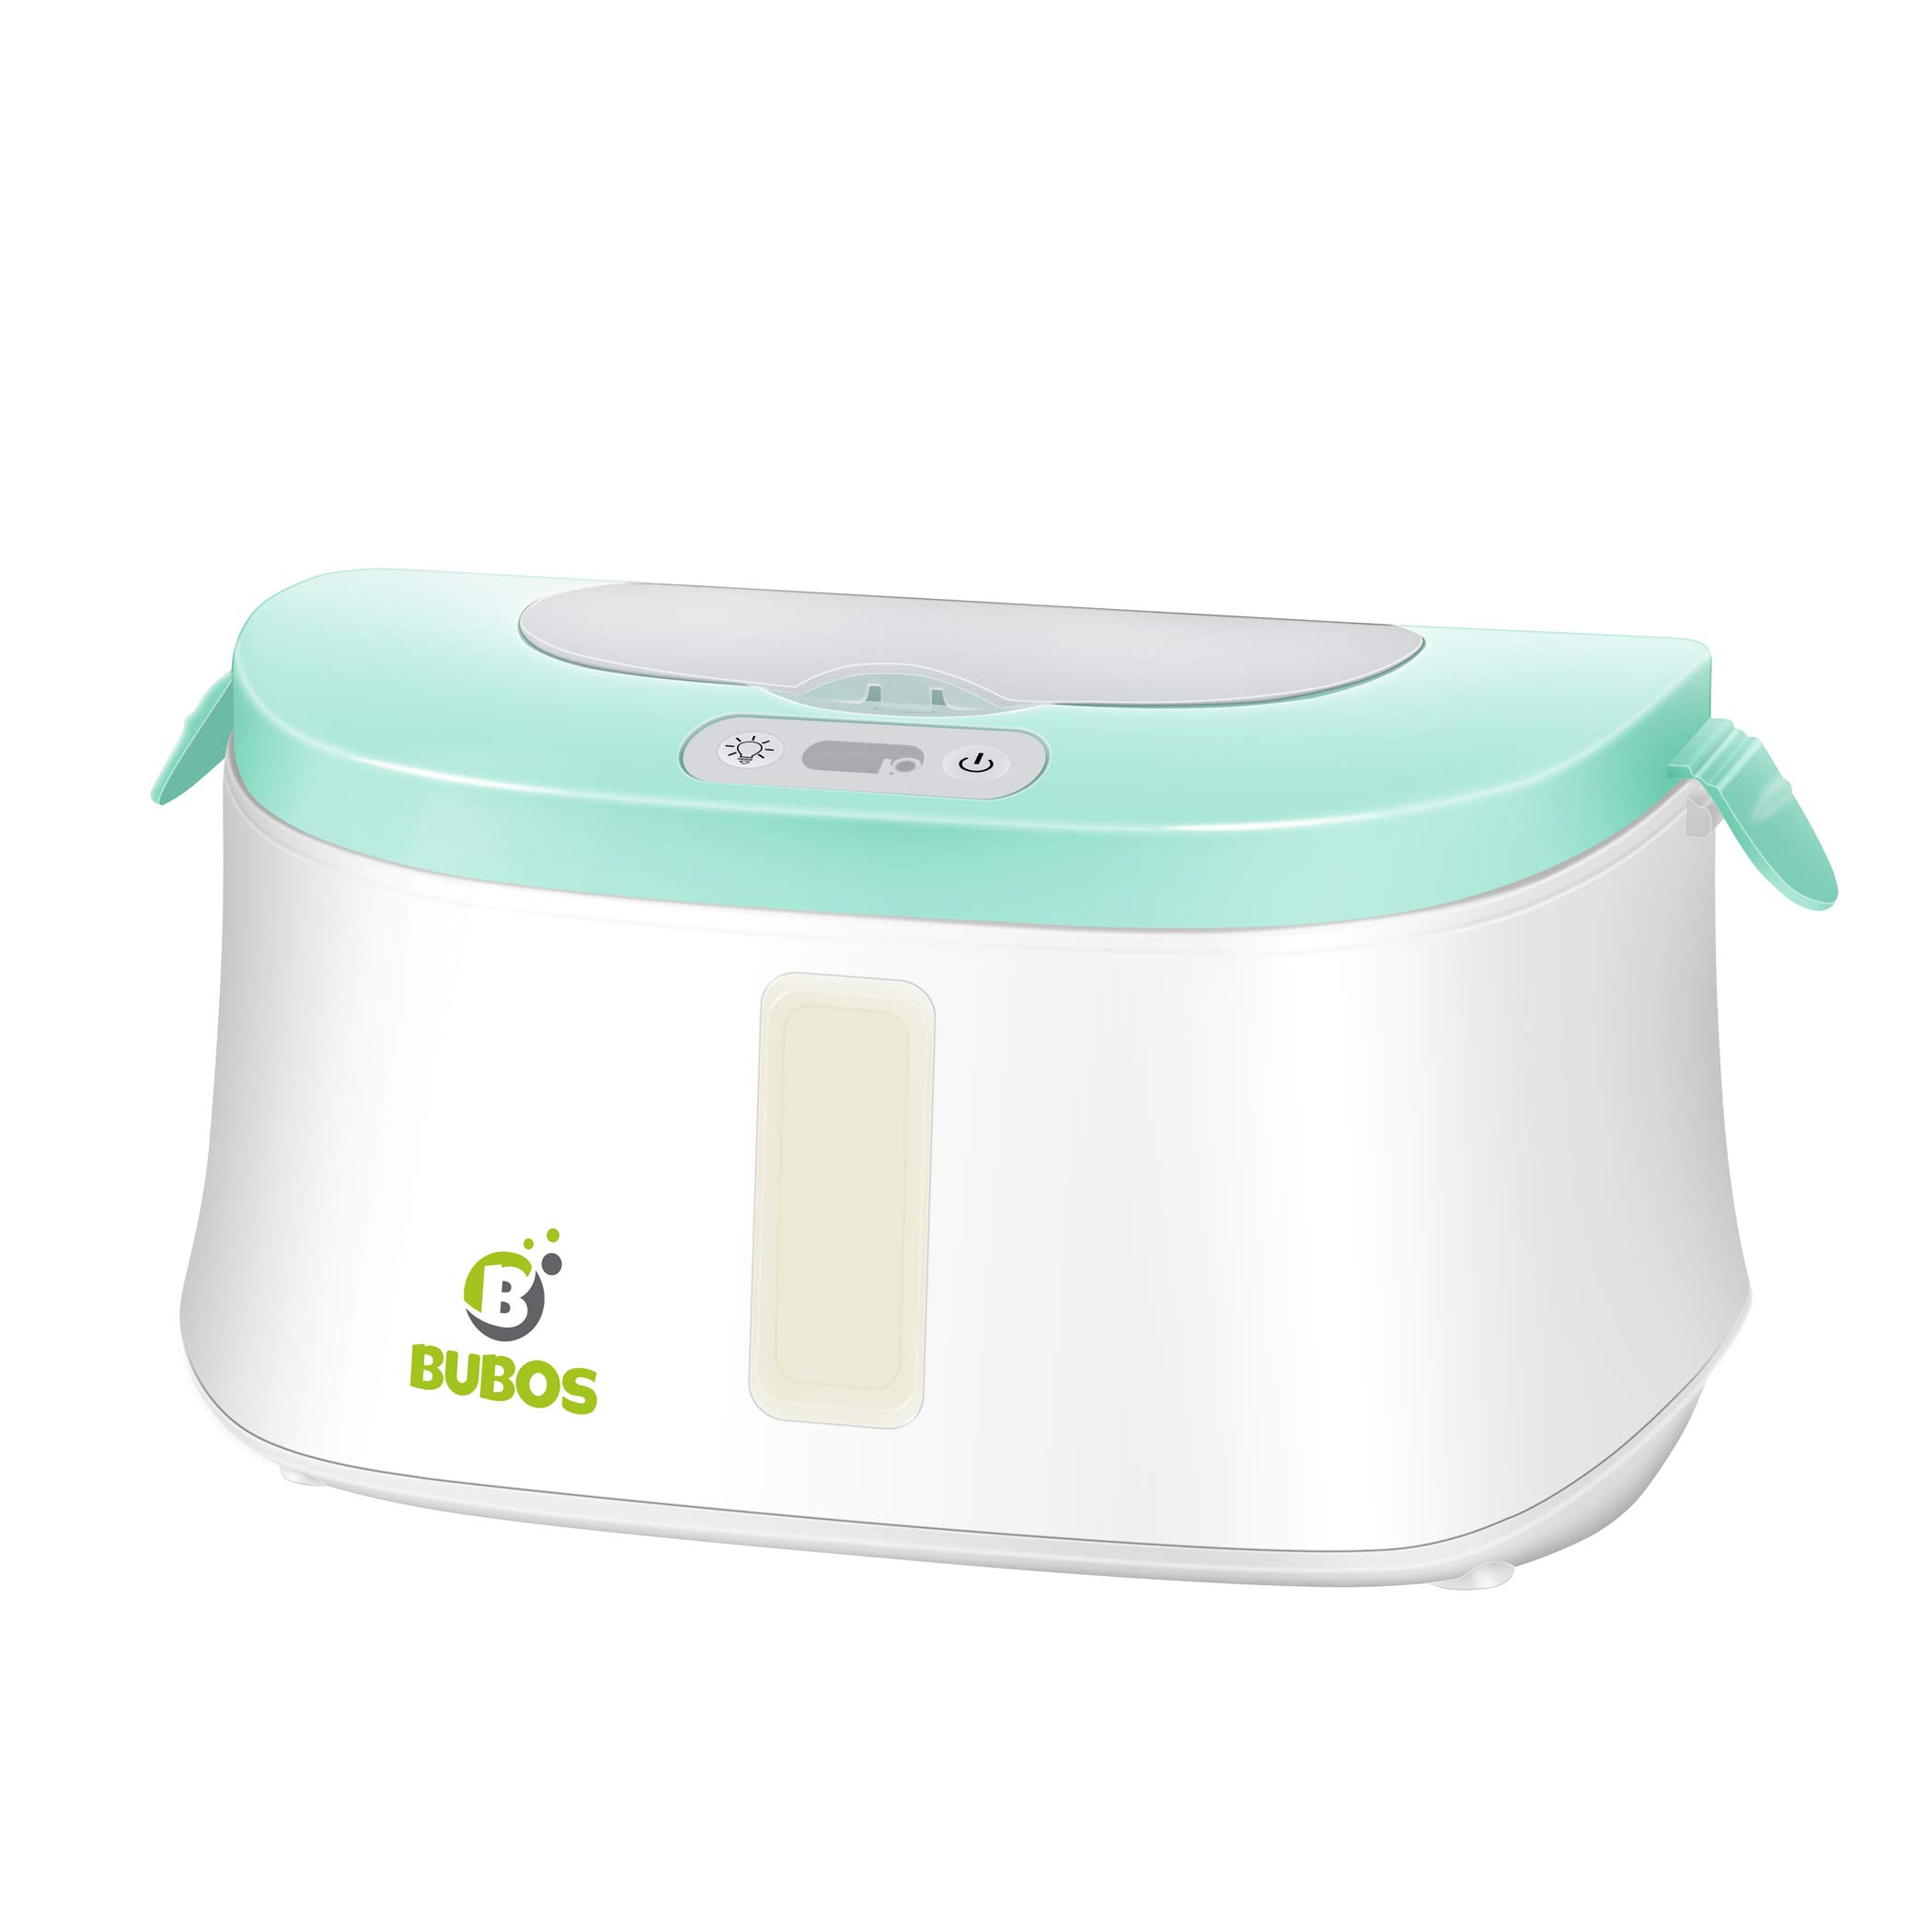 Bubos Wipe Warmer and Wet Wipes Dispenser with Advanced LED Night Light by B Bubos